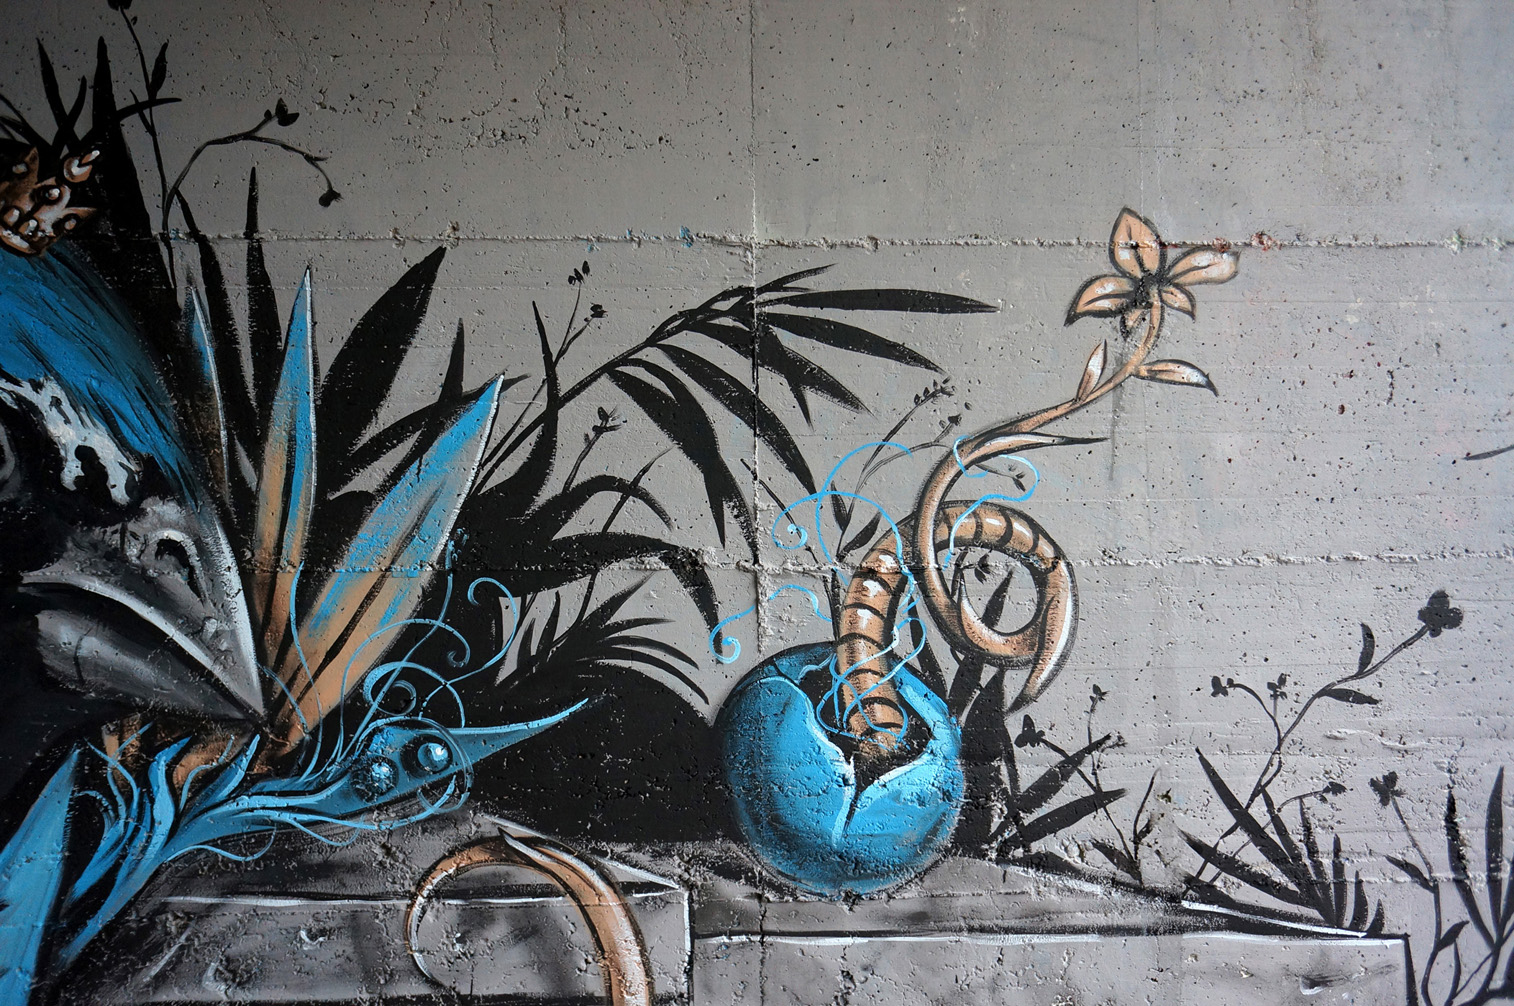 kraser-new-mural-for-urban-canvas-in-varese-06